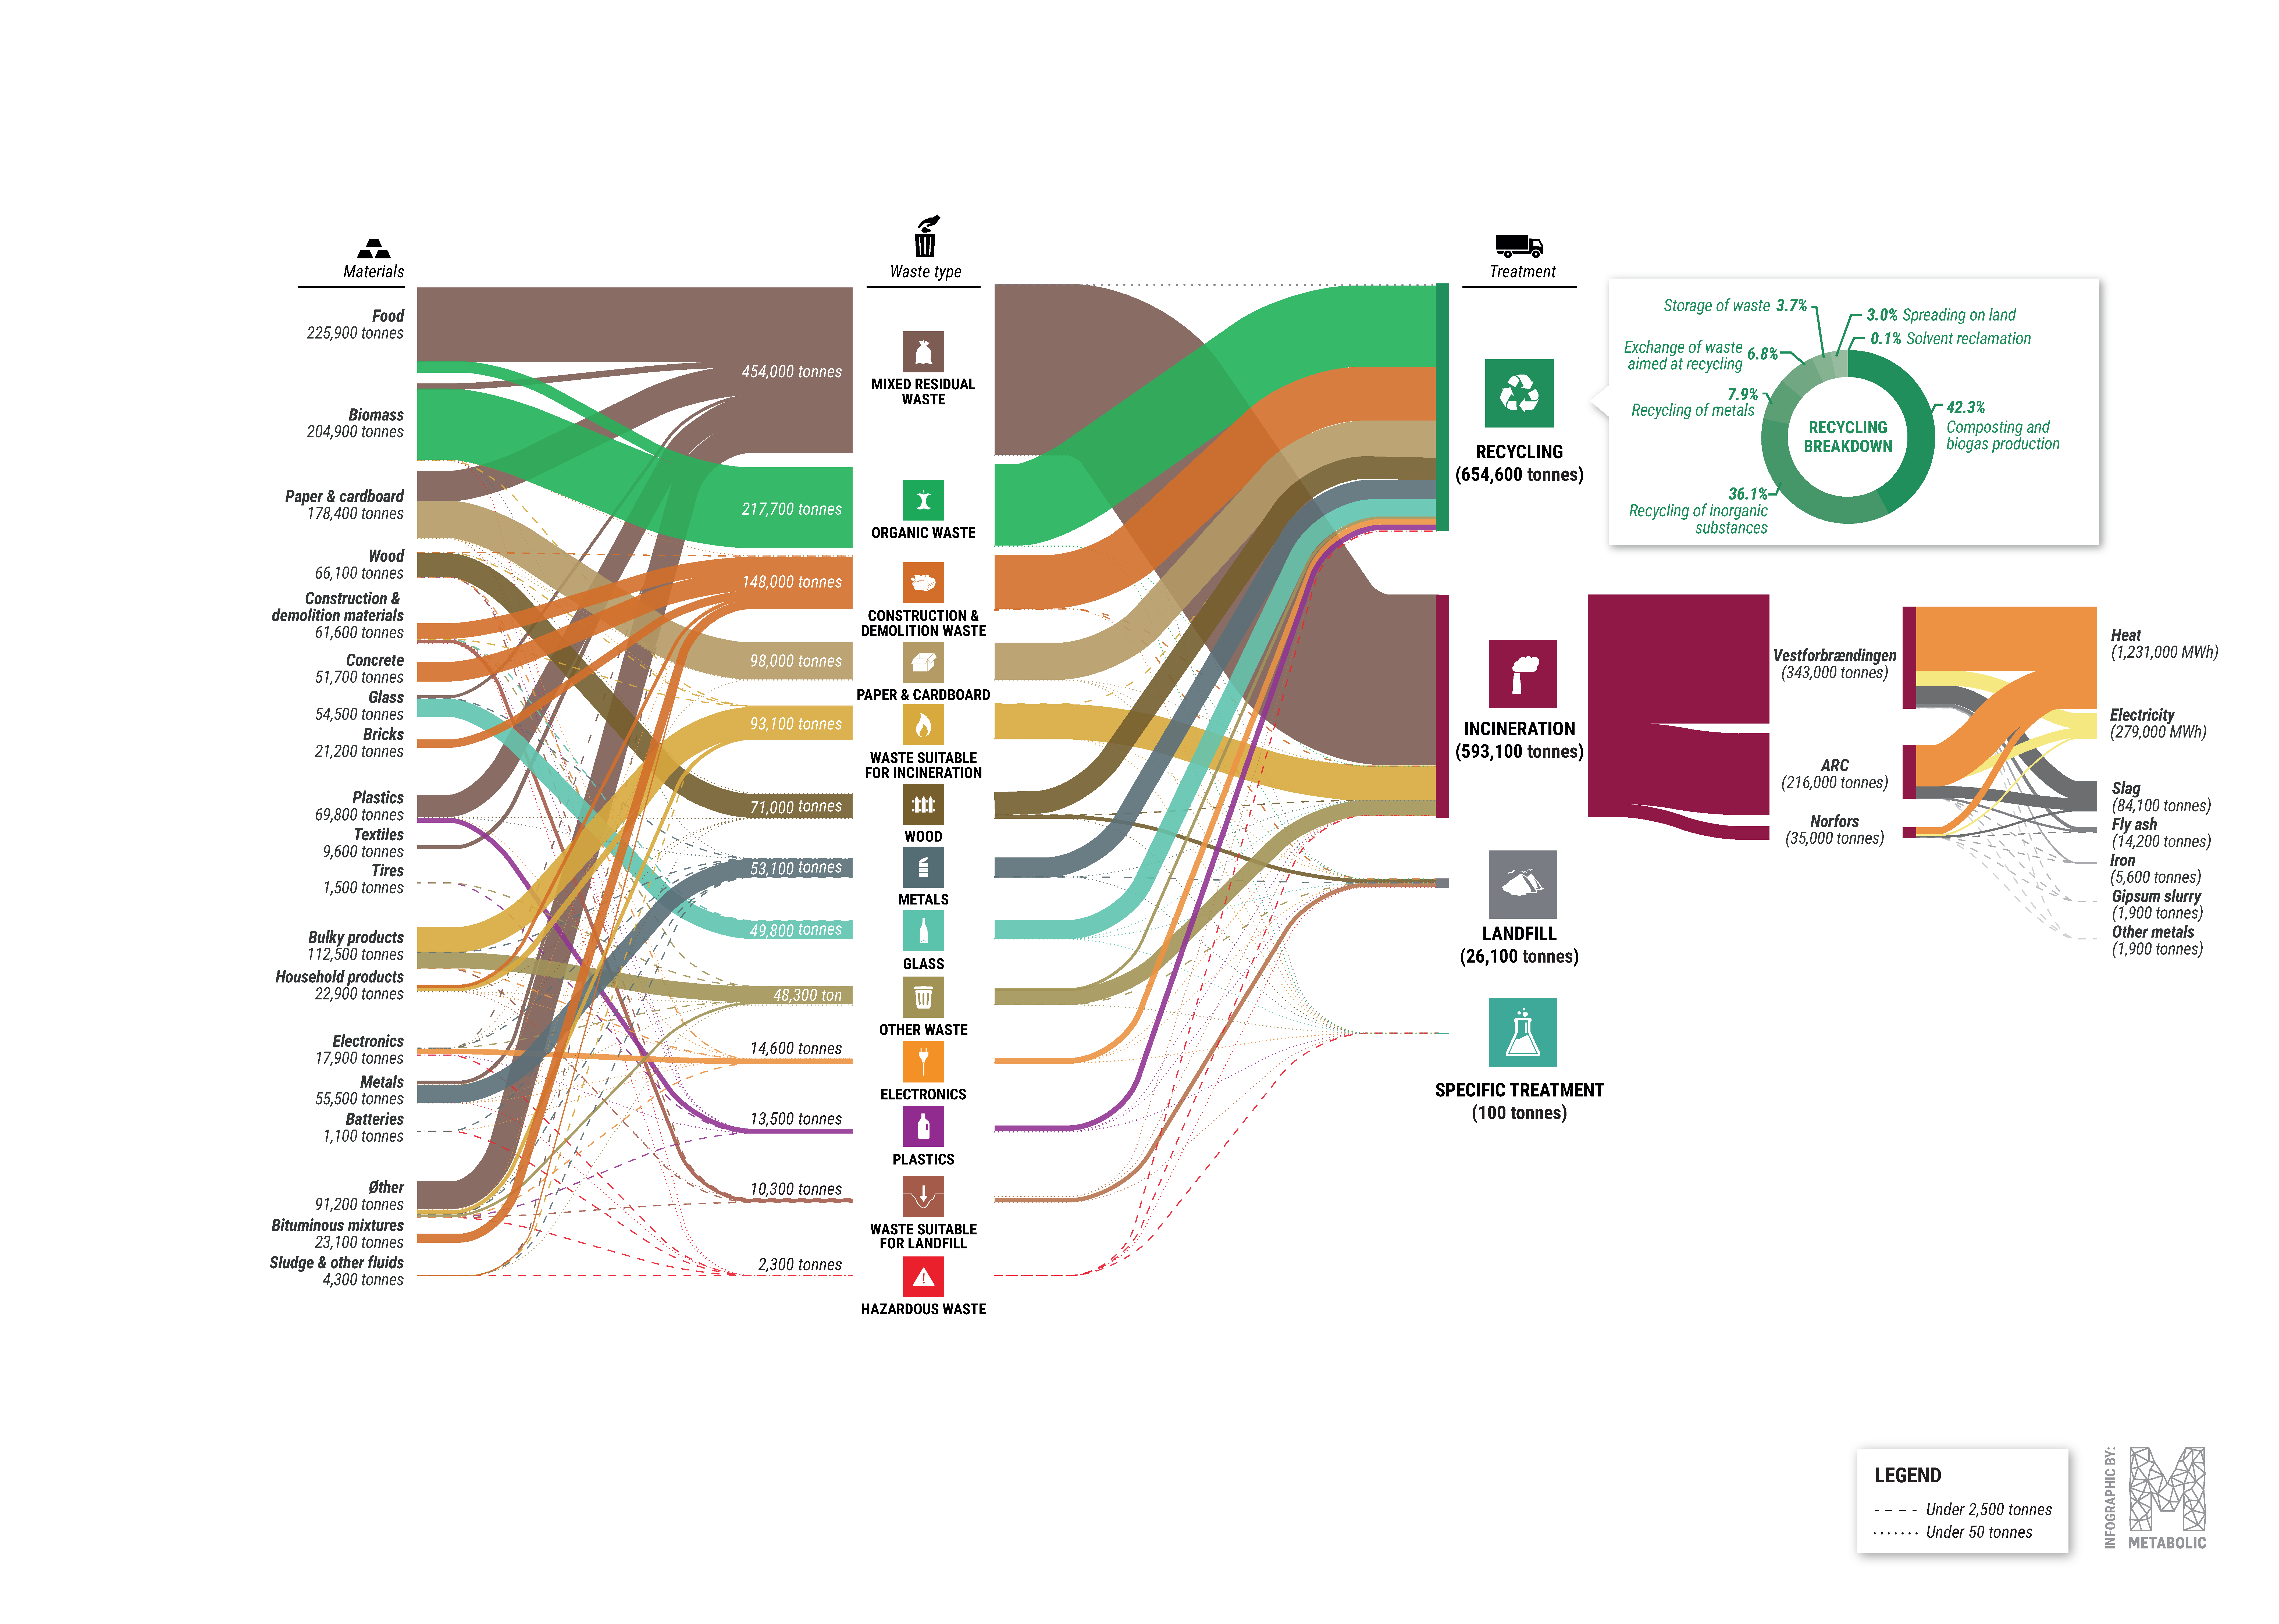 Sankey diagram of waste streams from households in the Capital Region. 2016, tonnes.